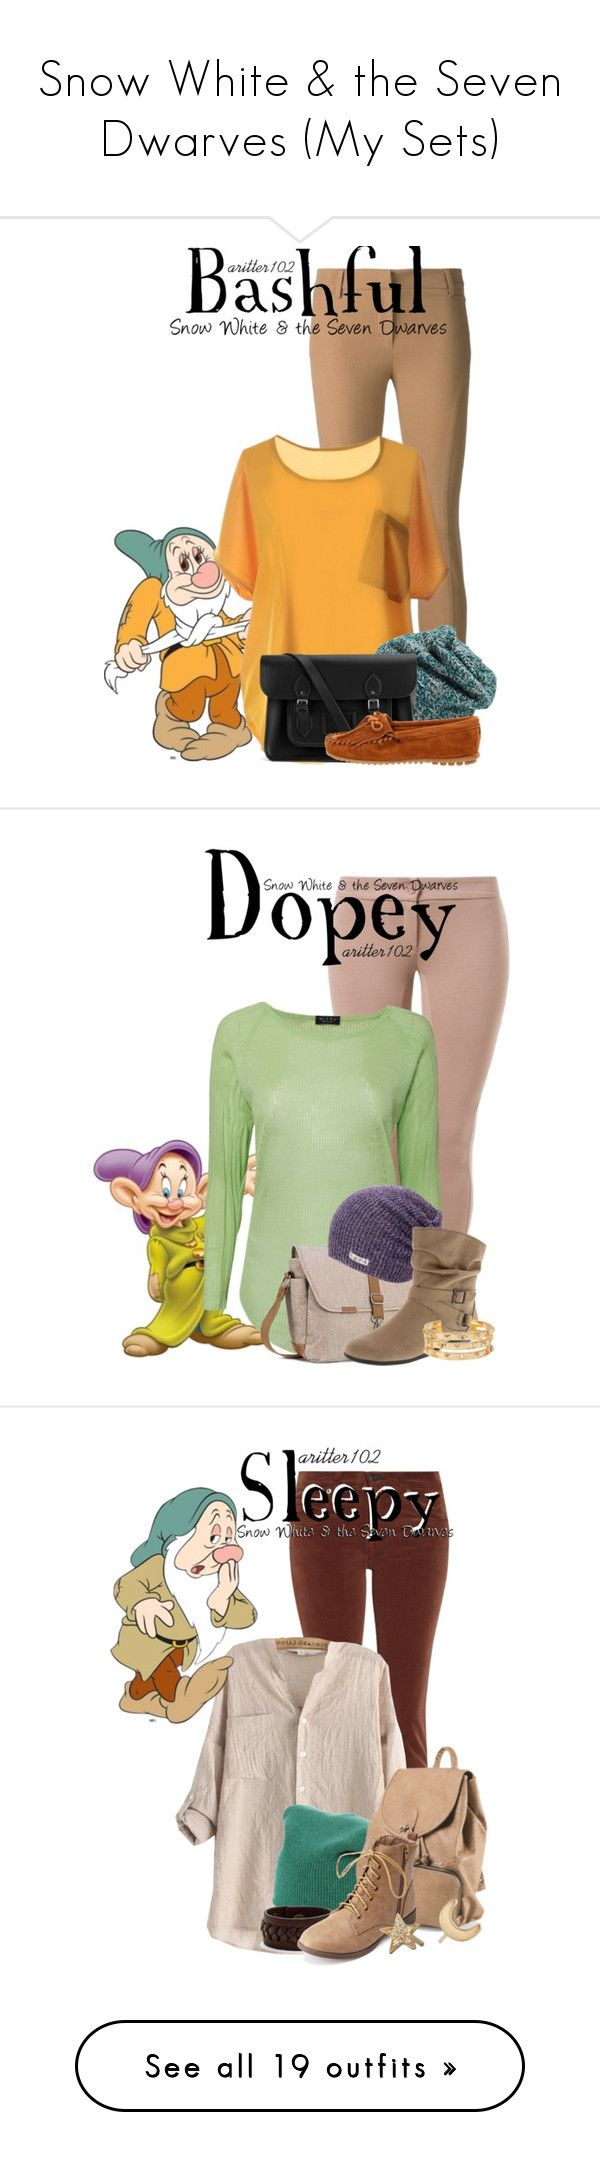 """""""Snow White & the Seven Dwarves (My Sets)"""" by aritter102 ❤ liked on Polyvore featuring 7 For All Mankind, Brunello Cucinelli, King & Fifth Supply Co., The Cambridge Satchel Company, Minnetonka, Patrizia Pepe, Disney, Neera, Timbuk2 and Neff"""